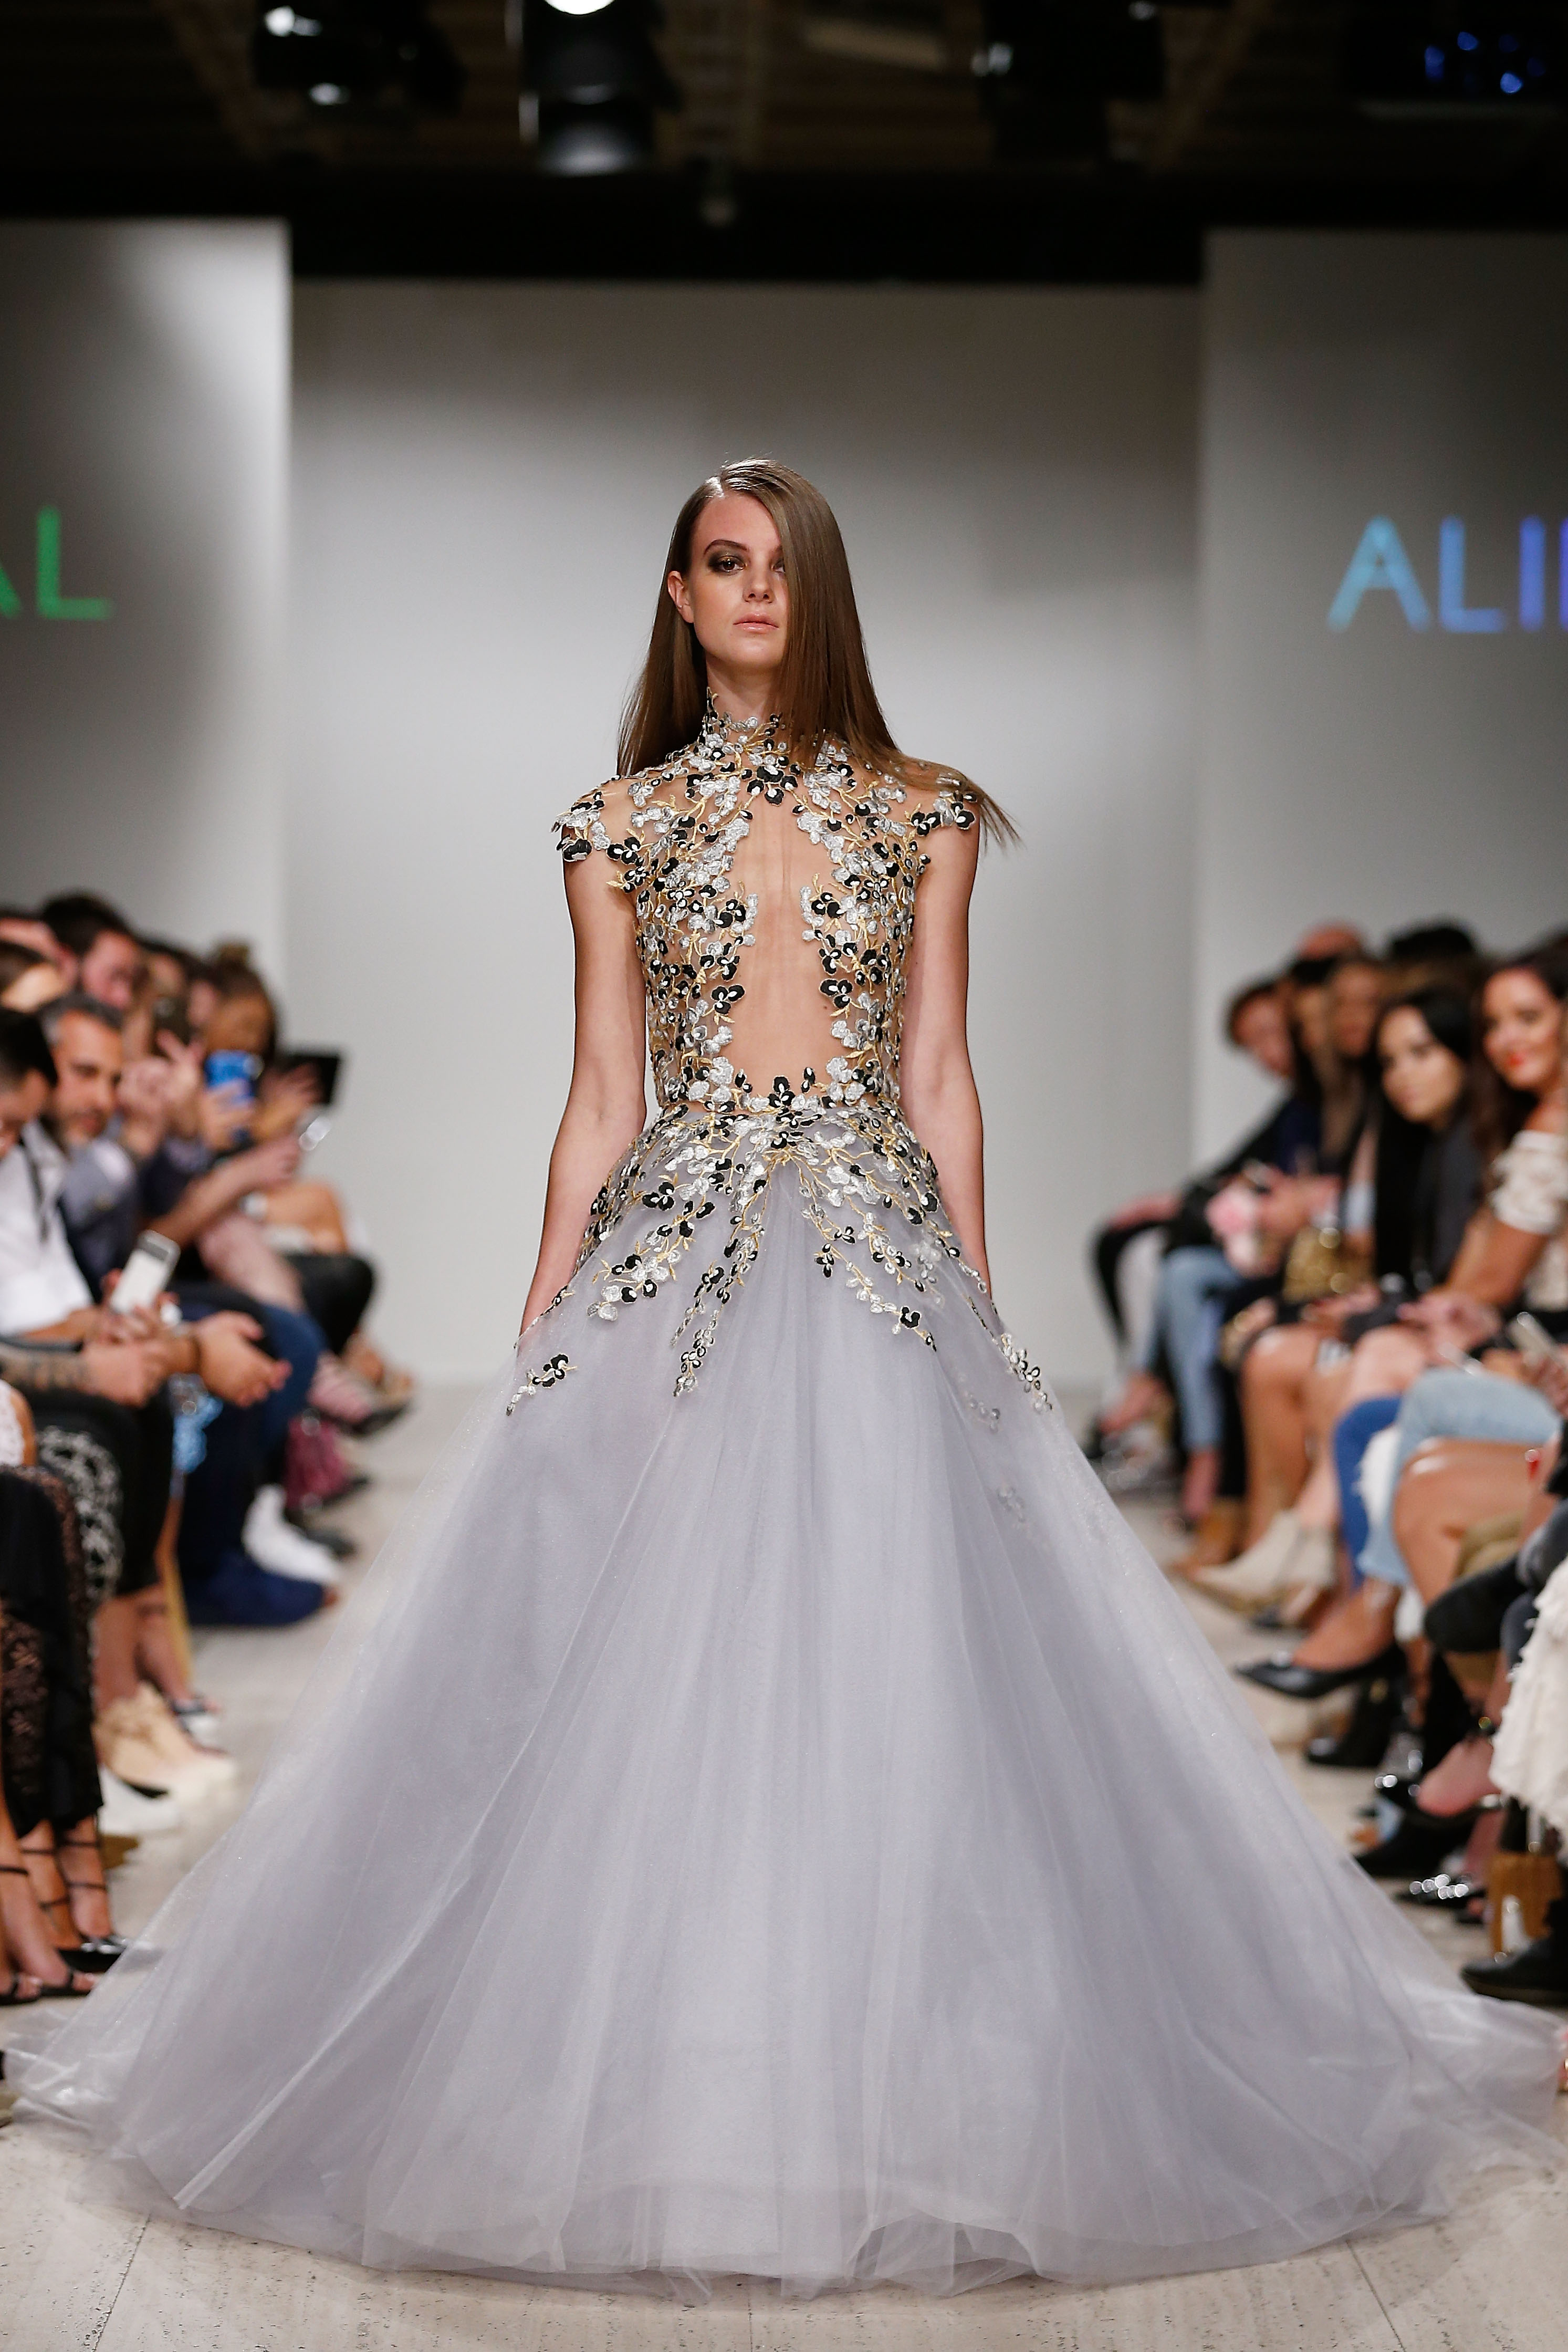 SYDNEY, AUSTRALIA - APRIL 04:  A model showcases designs by ALIN LE KAL during the Fashion Palette Sydney Spring/Summer 2017/18 show at Art Gallery Of NSW on April 4, 2017 in Sydney, Australia.  (Photo by Zak Kaczmarek/Getty Images for Fashion Palette)